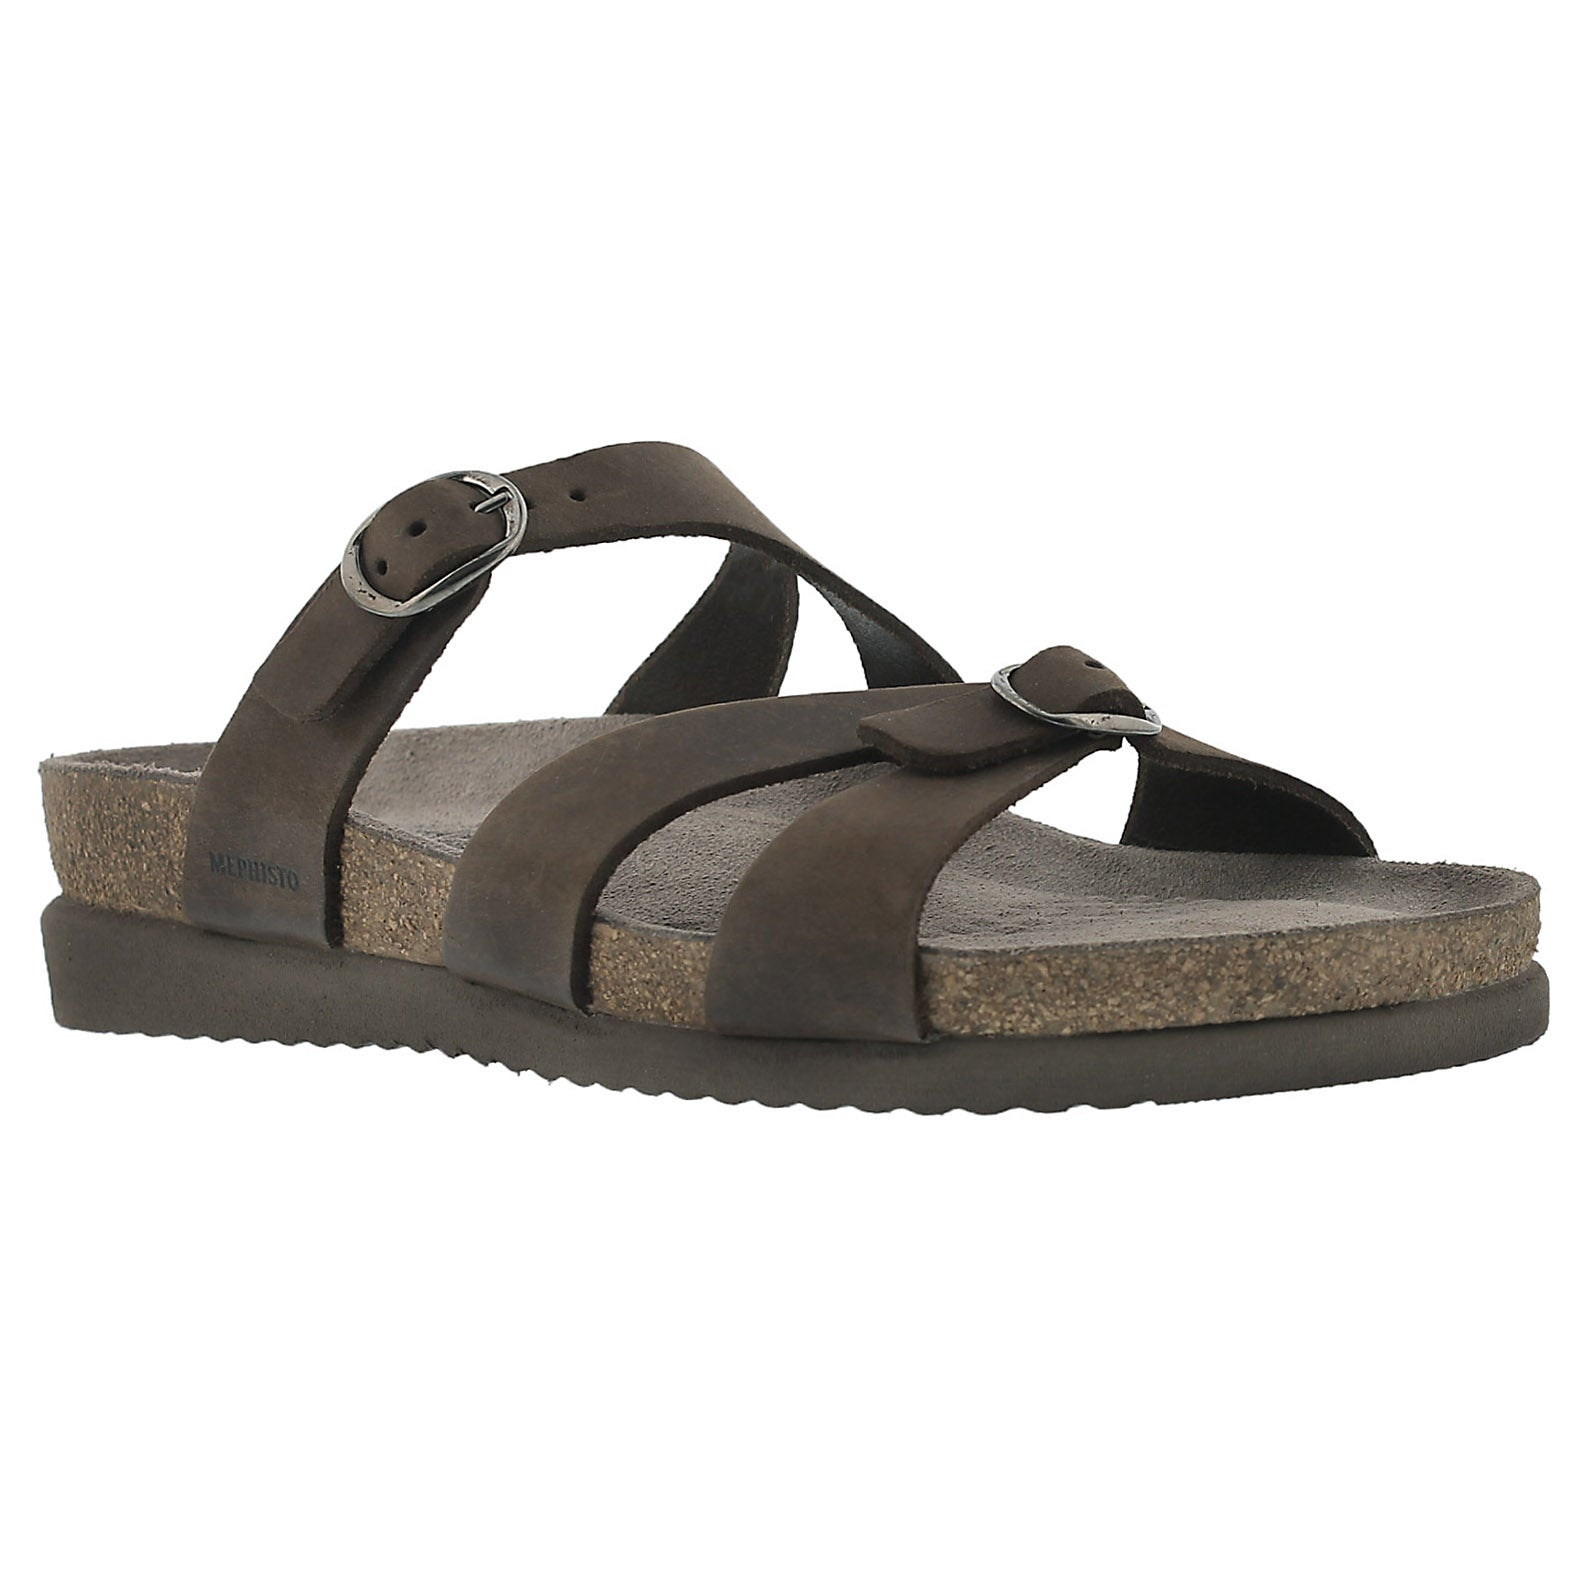 Women's HANNEL dark brown cork footbed slide